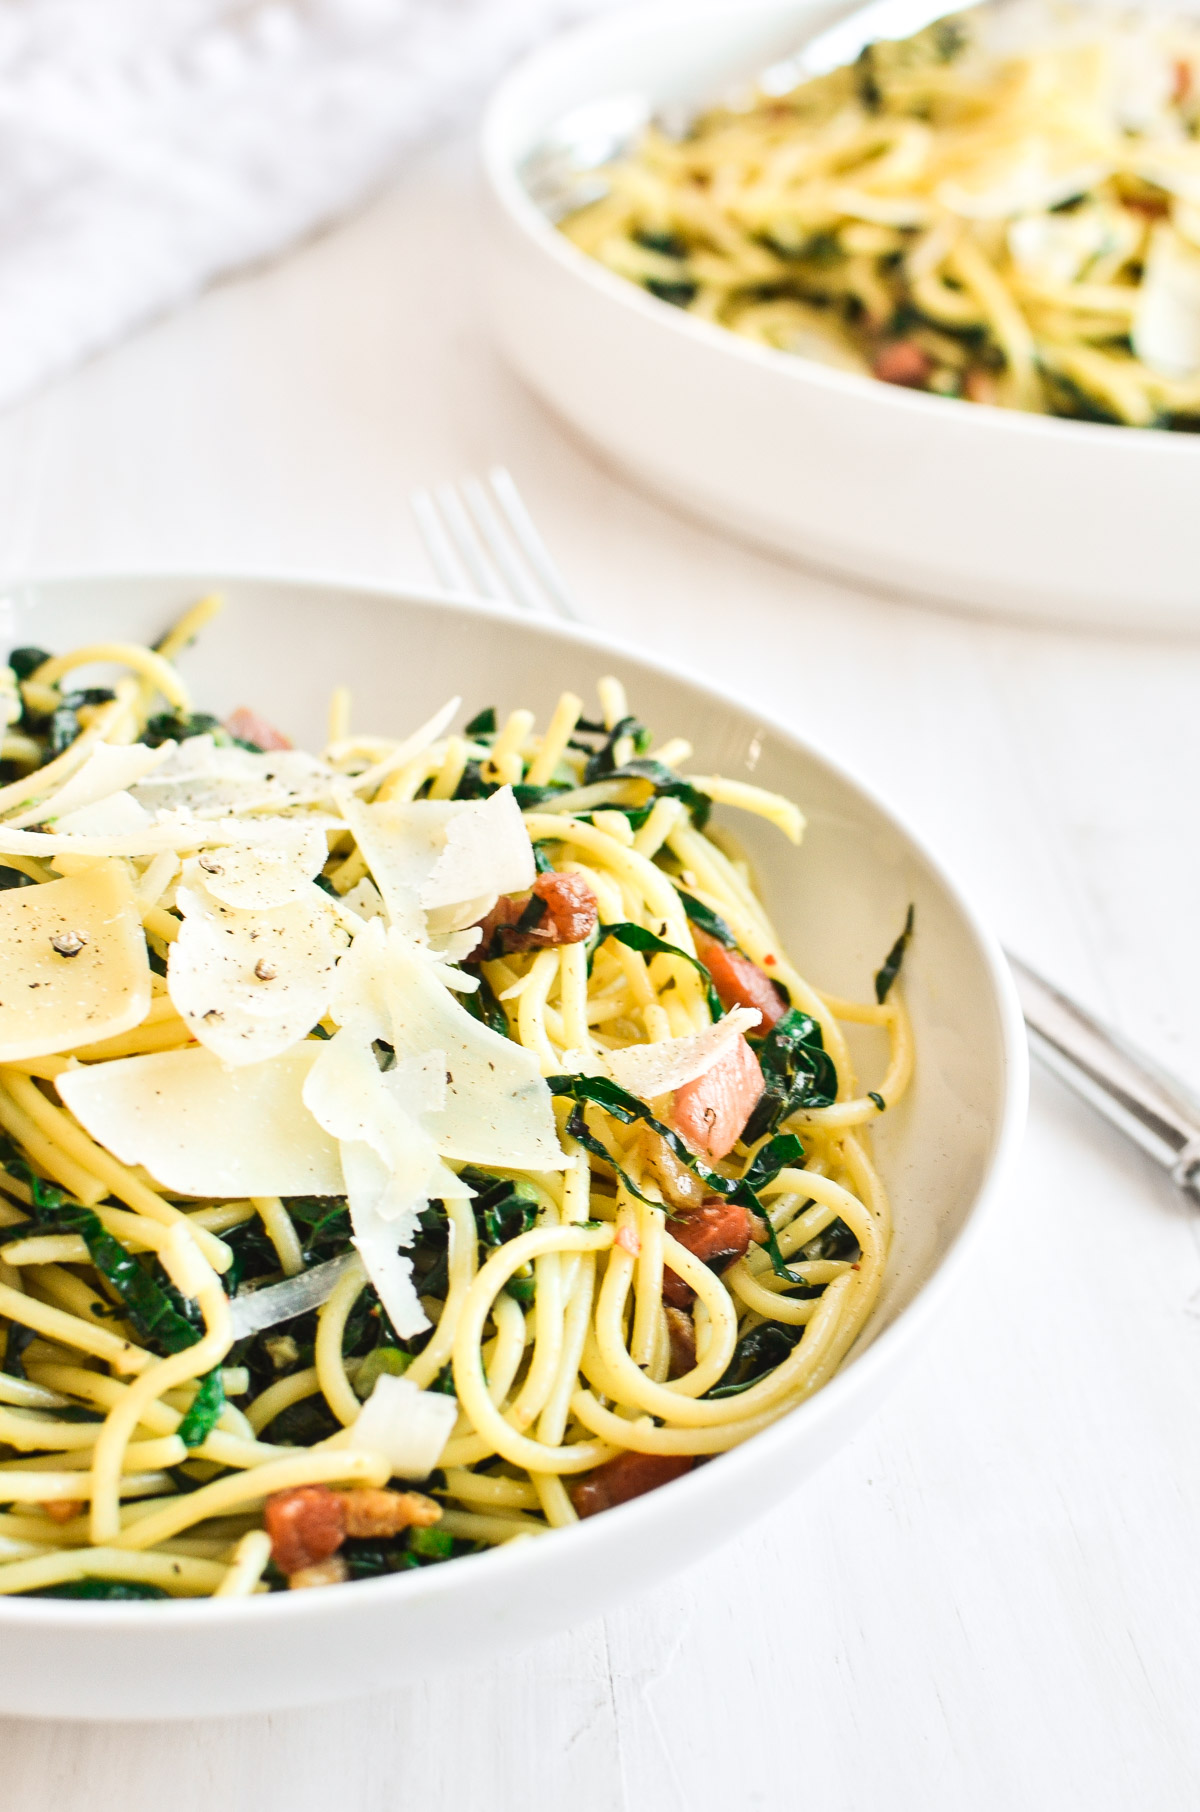 A bowl of Kale and Pancetta Pasta.